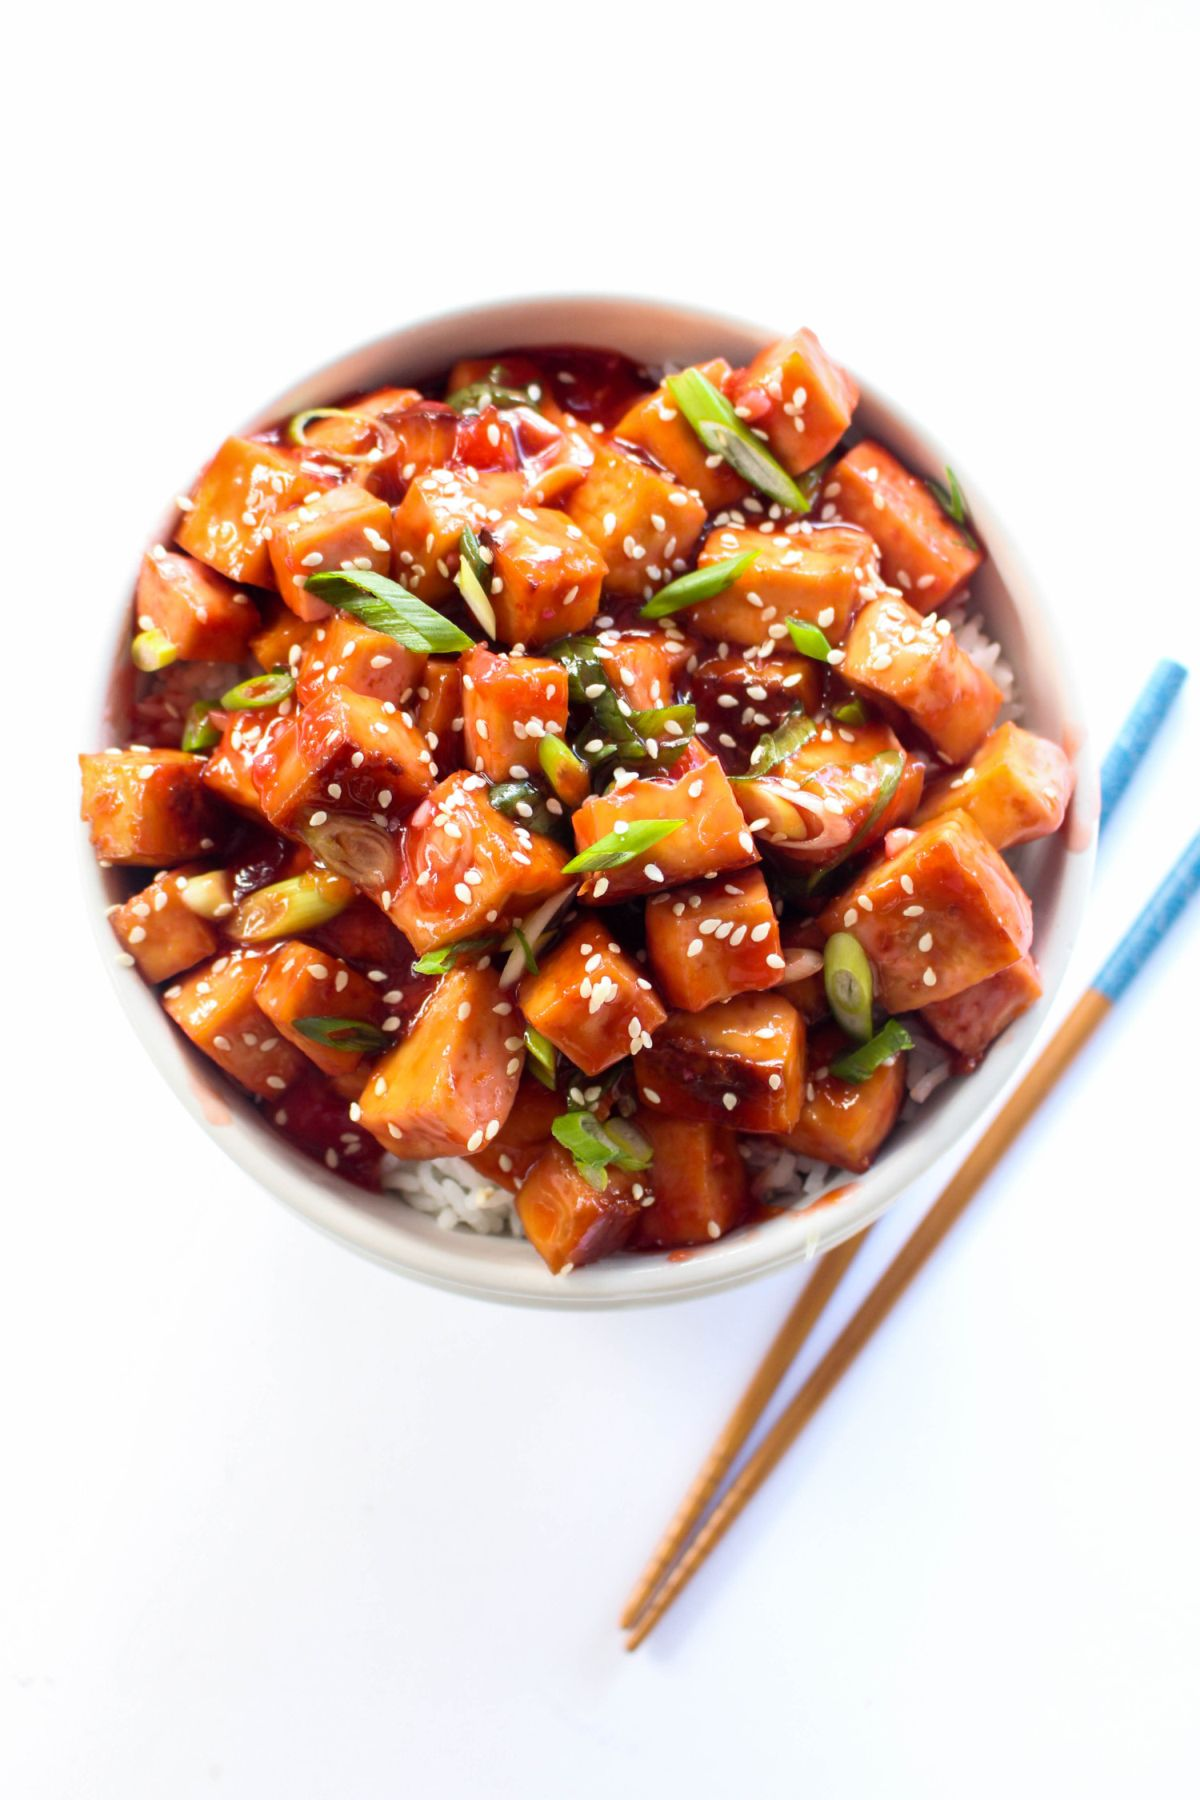 Tofu Rice Bowls with Sweet and Sour Blood Orange Sauce